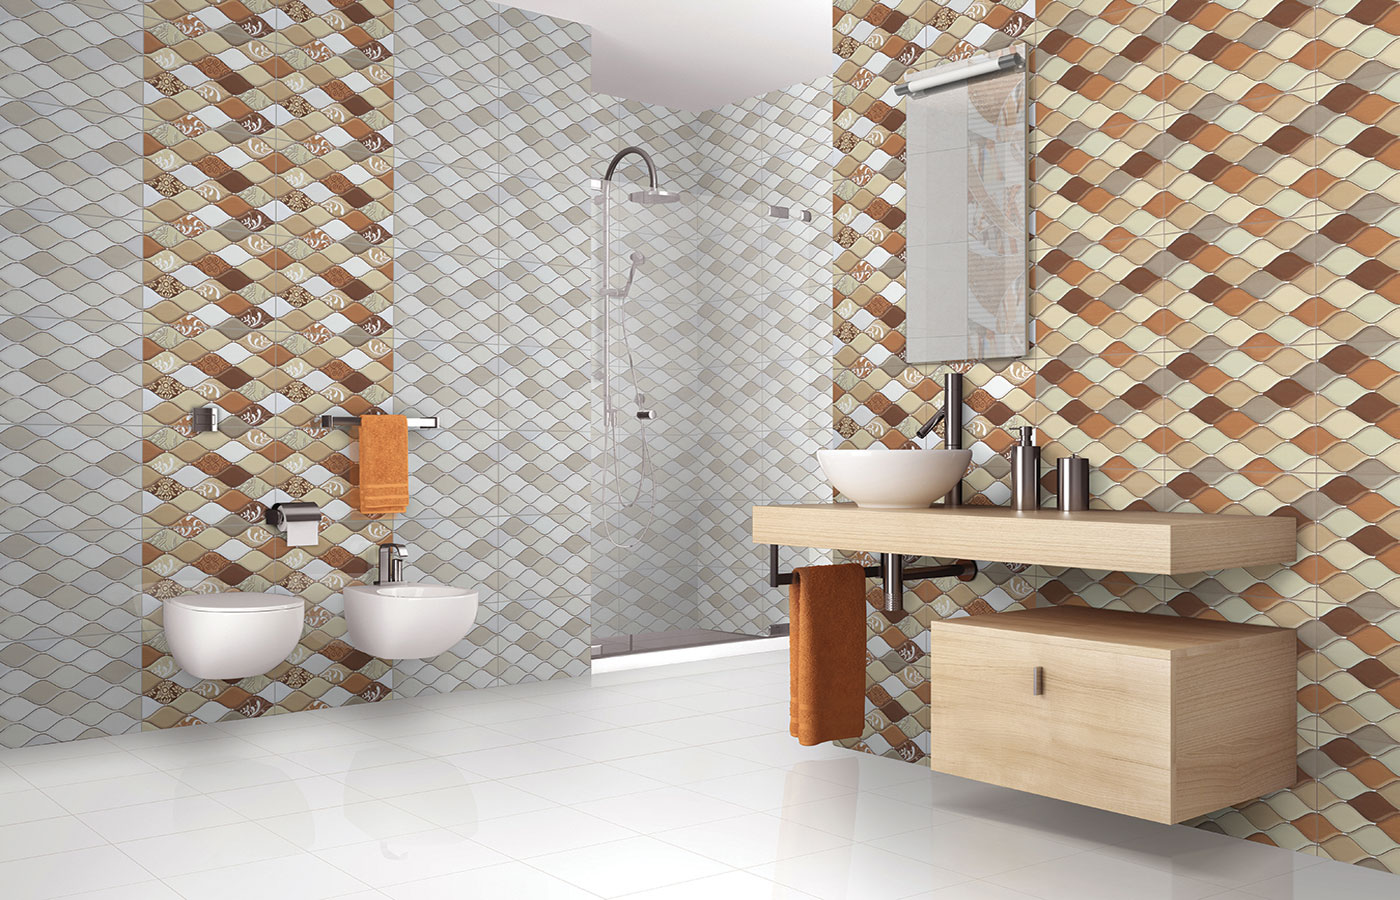 21 unique bathroom tile designs ideas and pictures for Cool floor tile designs